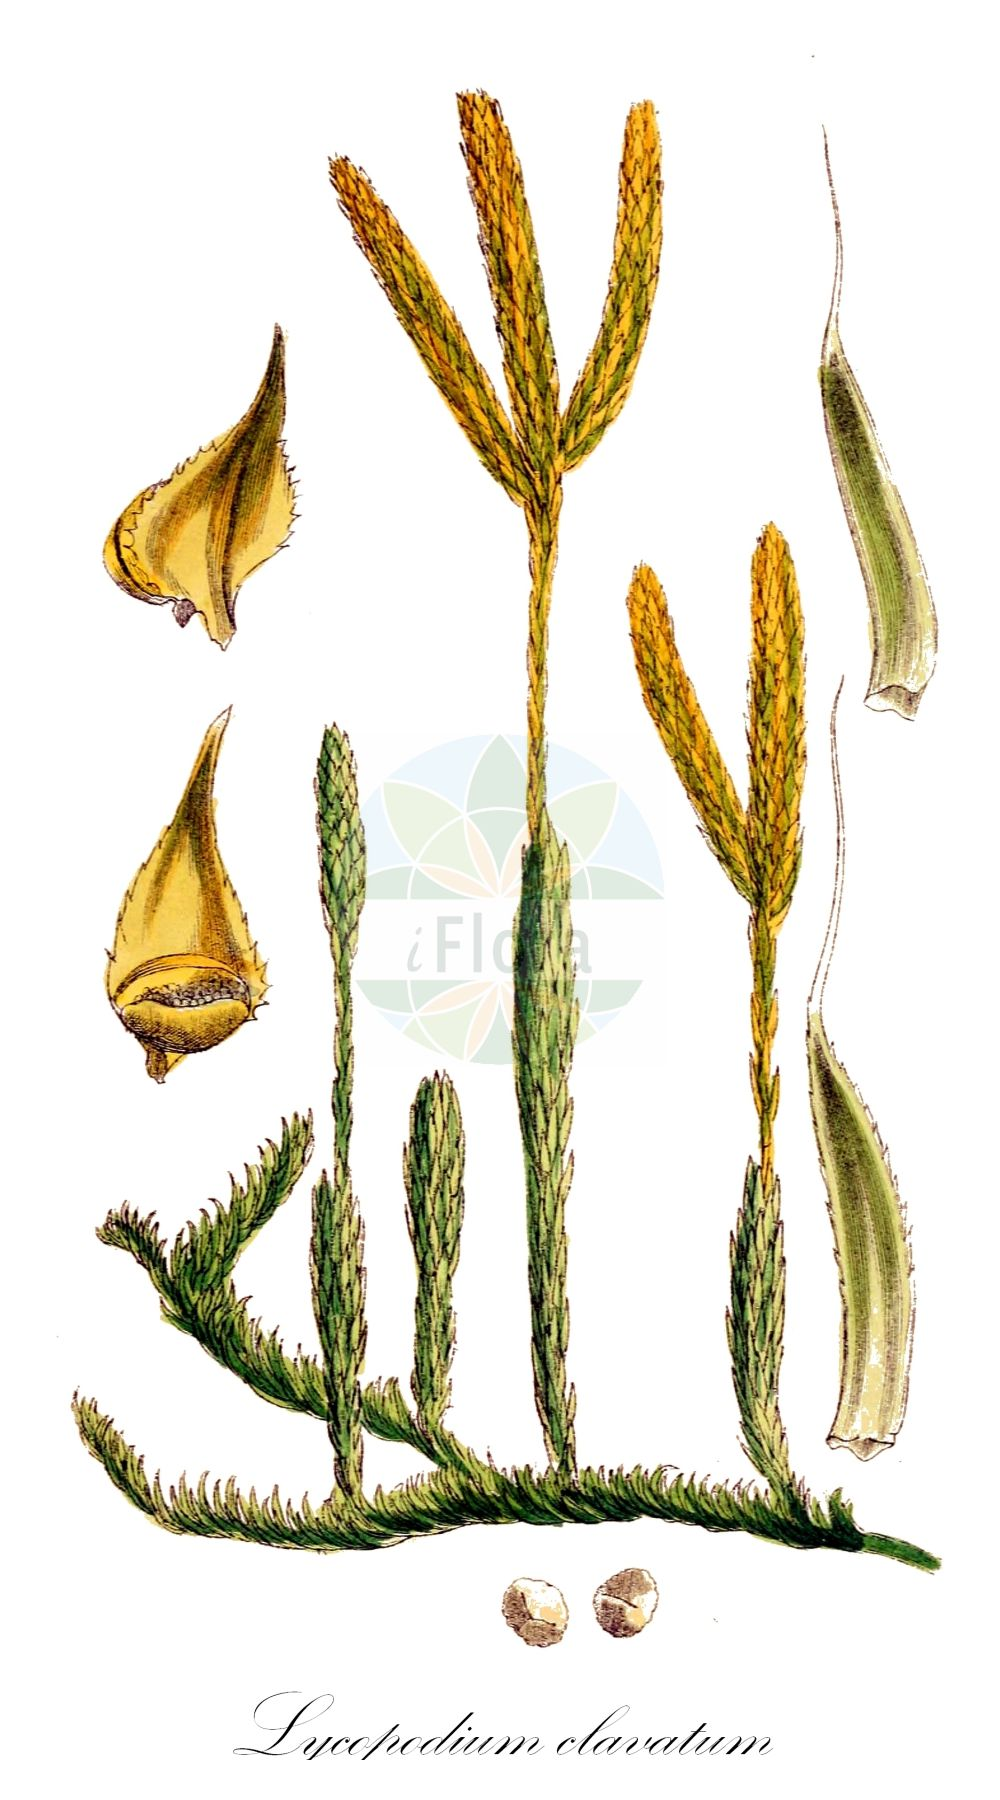 Historische Abbildung von Lycopodium clavatum (Keulen-Baerlapp - Stag's-horn Clubmoss). Das Bild zeigt Blatt, Bluete, Frucht und Same. ---- Historical Drawing of Lycopodium clavatum (Keulen-Baerlapp - Stag's-horn Clubmoss).The image is showing leaf, flower, fruit and seed.(Lycopodium clavatum,Keulen-Baerlapp,Stag's-horn Clubmoss,Lycopodium lagopus,Schlangenmoos,Drudenfuss,Wolfsraute,Common Clubmoss,One-cone Clubmoss,Running Clubmoss,Ground Pine,Lycopodium,Baerlapp,Clubmoss,Lycopodiaceae,Baerlappgewaechse,Clubmoss family,Blatt,Bluete,Frucht,Same,leaf,flower,fruit,seed,Sowerby (1790-1813))